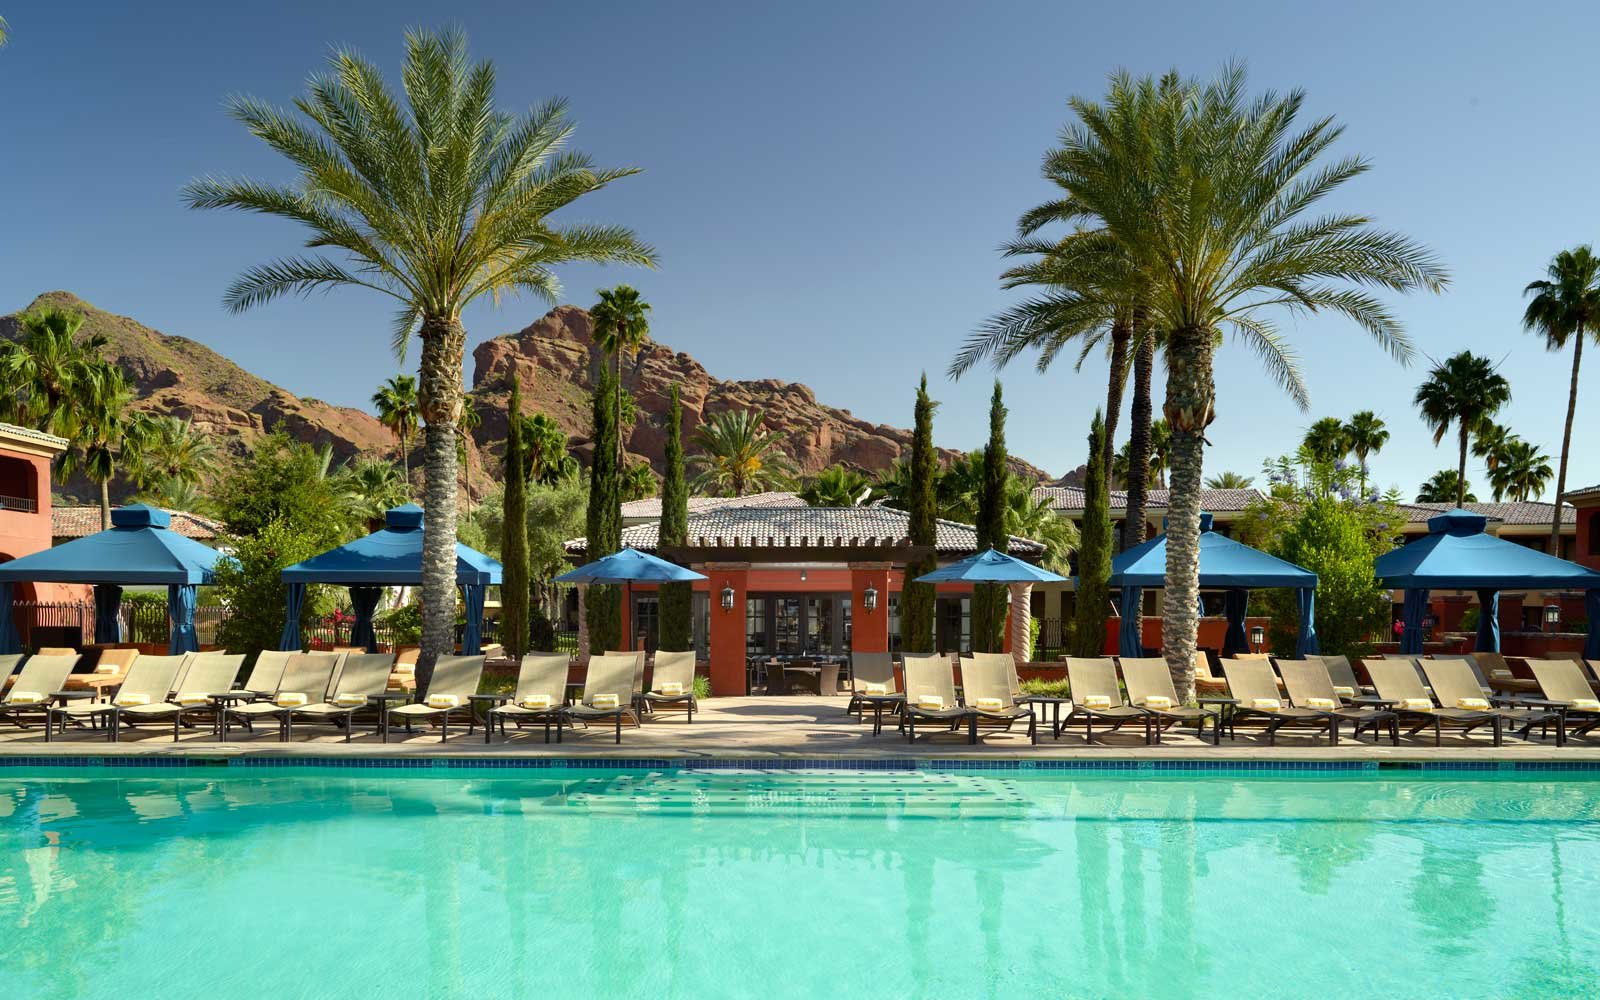 Resorts in Scottsdale, AZ